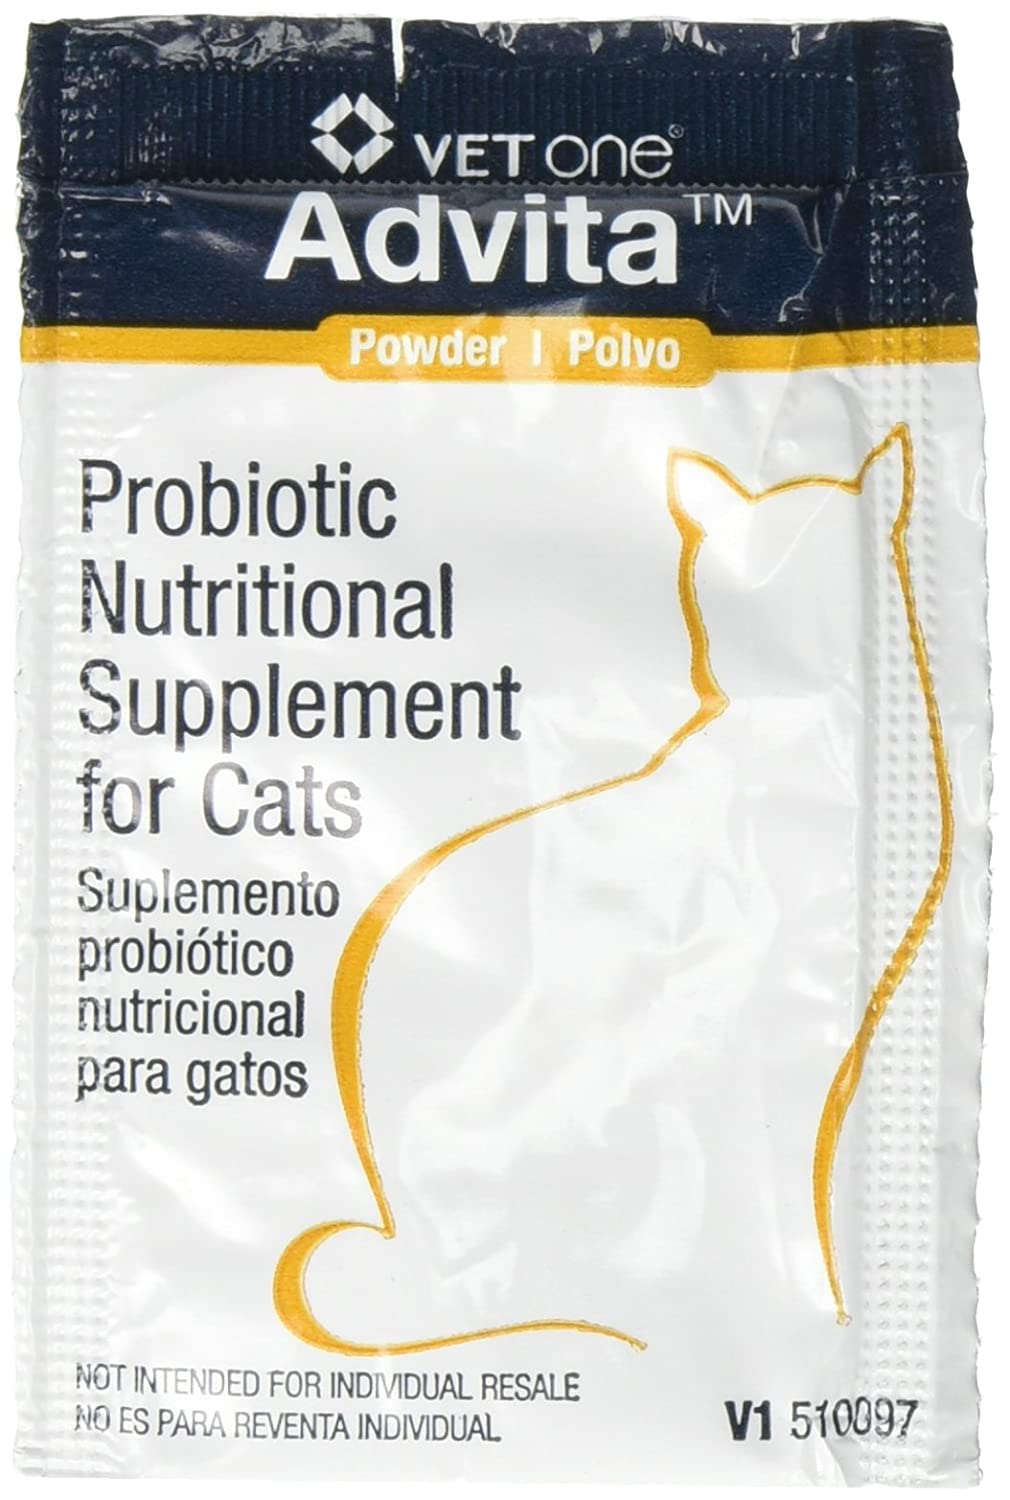 Advita Powder Probiotic Nutritional Supplement for Cats - 30 (1 gram) packets